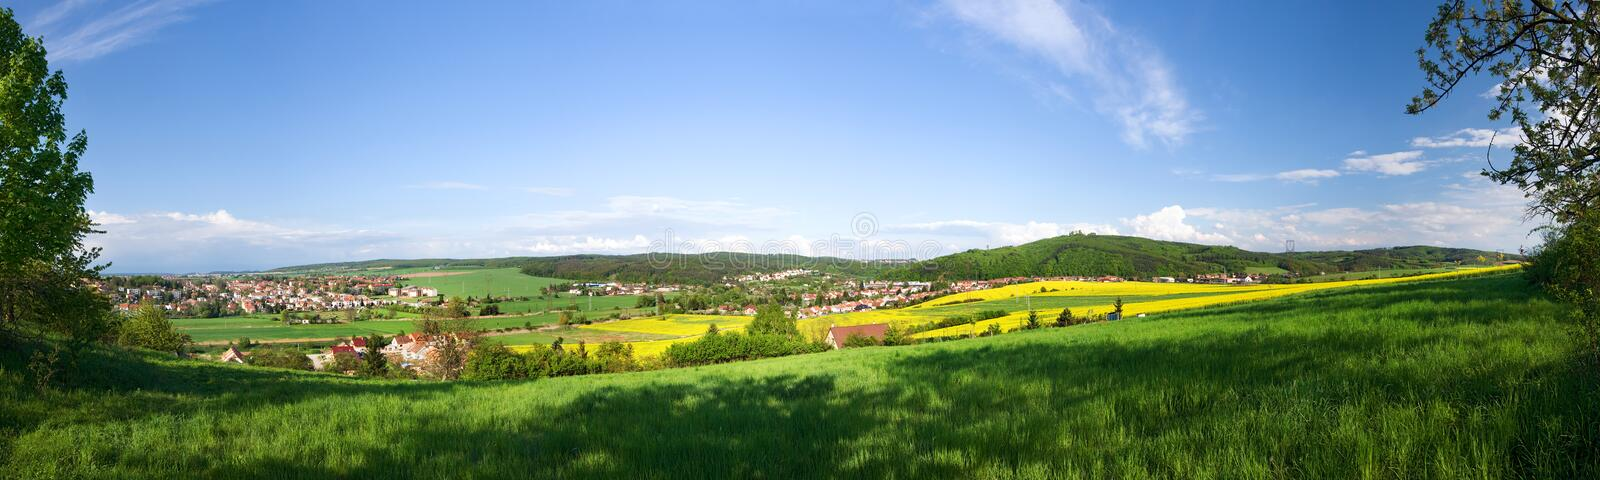 Panoramic spring landscape-6 vertical shots royalty free stock image